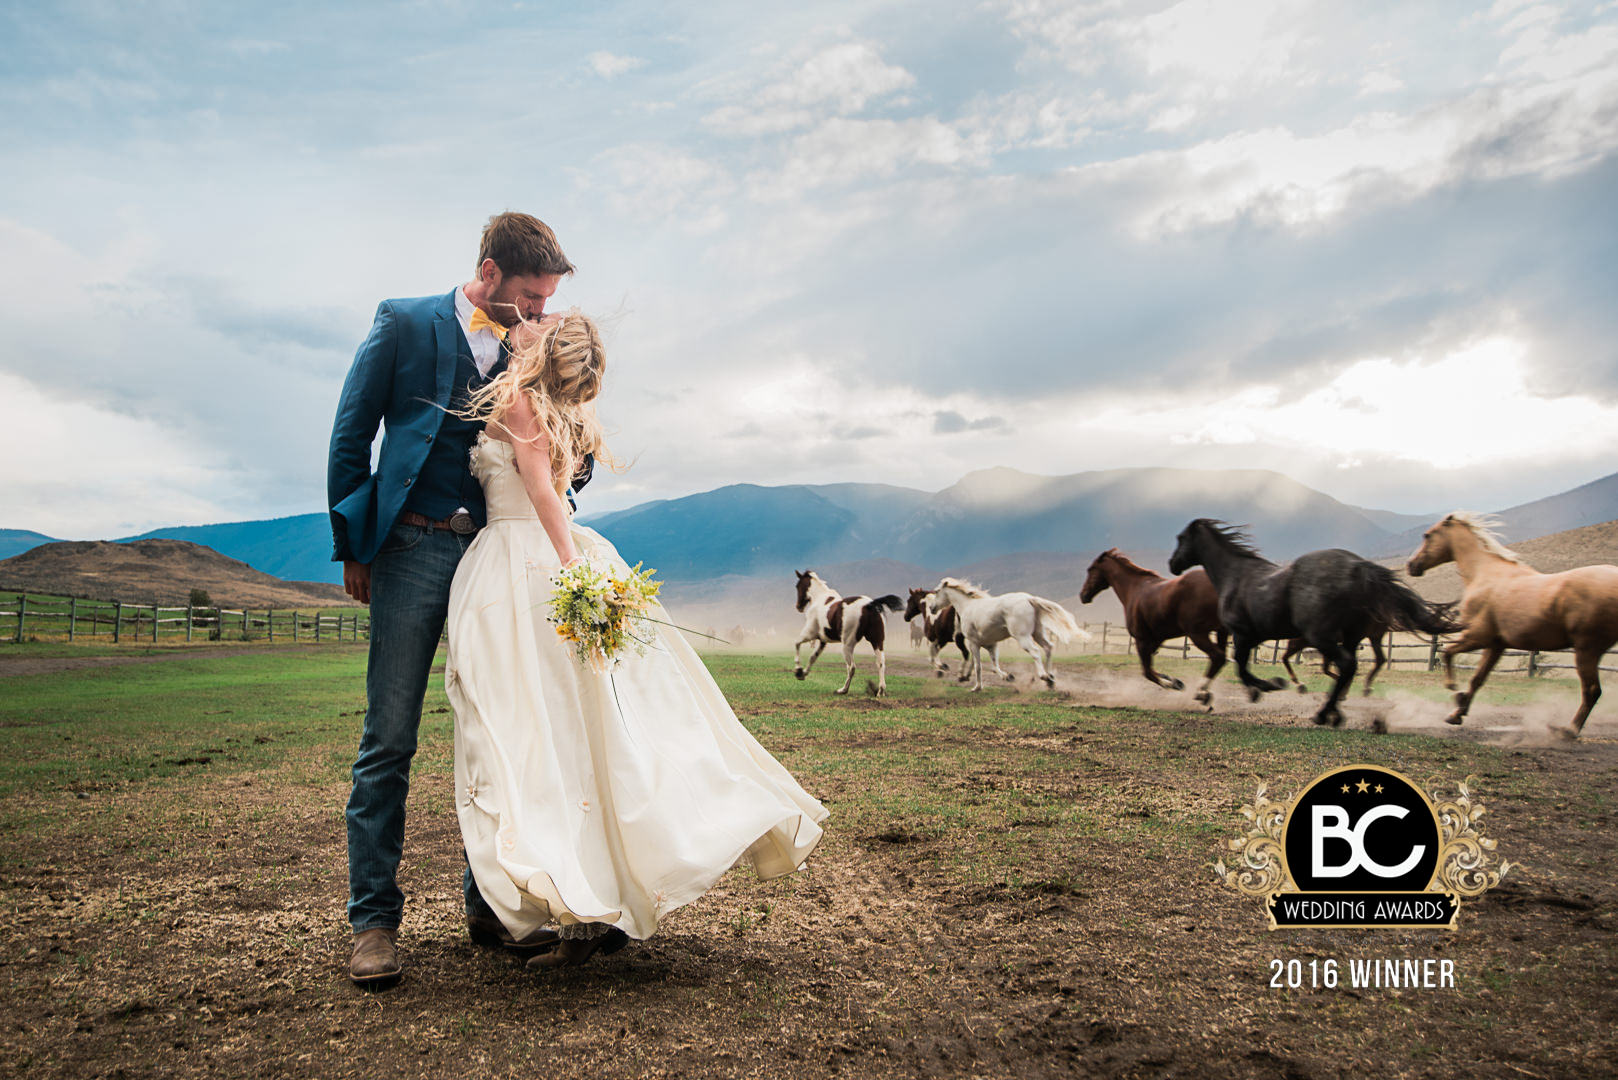 spontaneous and adventurous brides and grooms